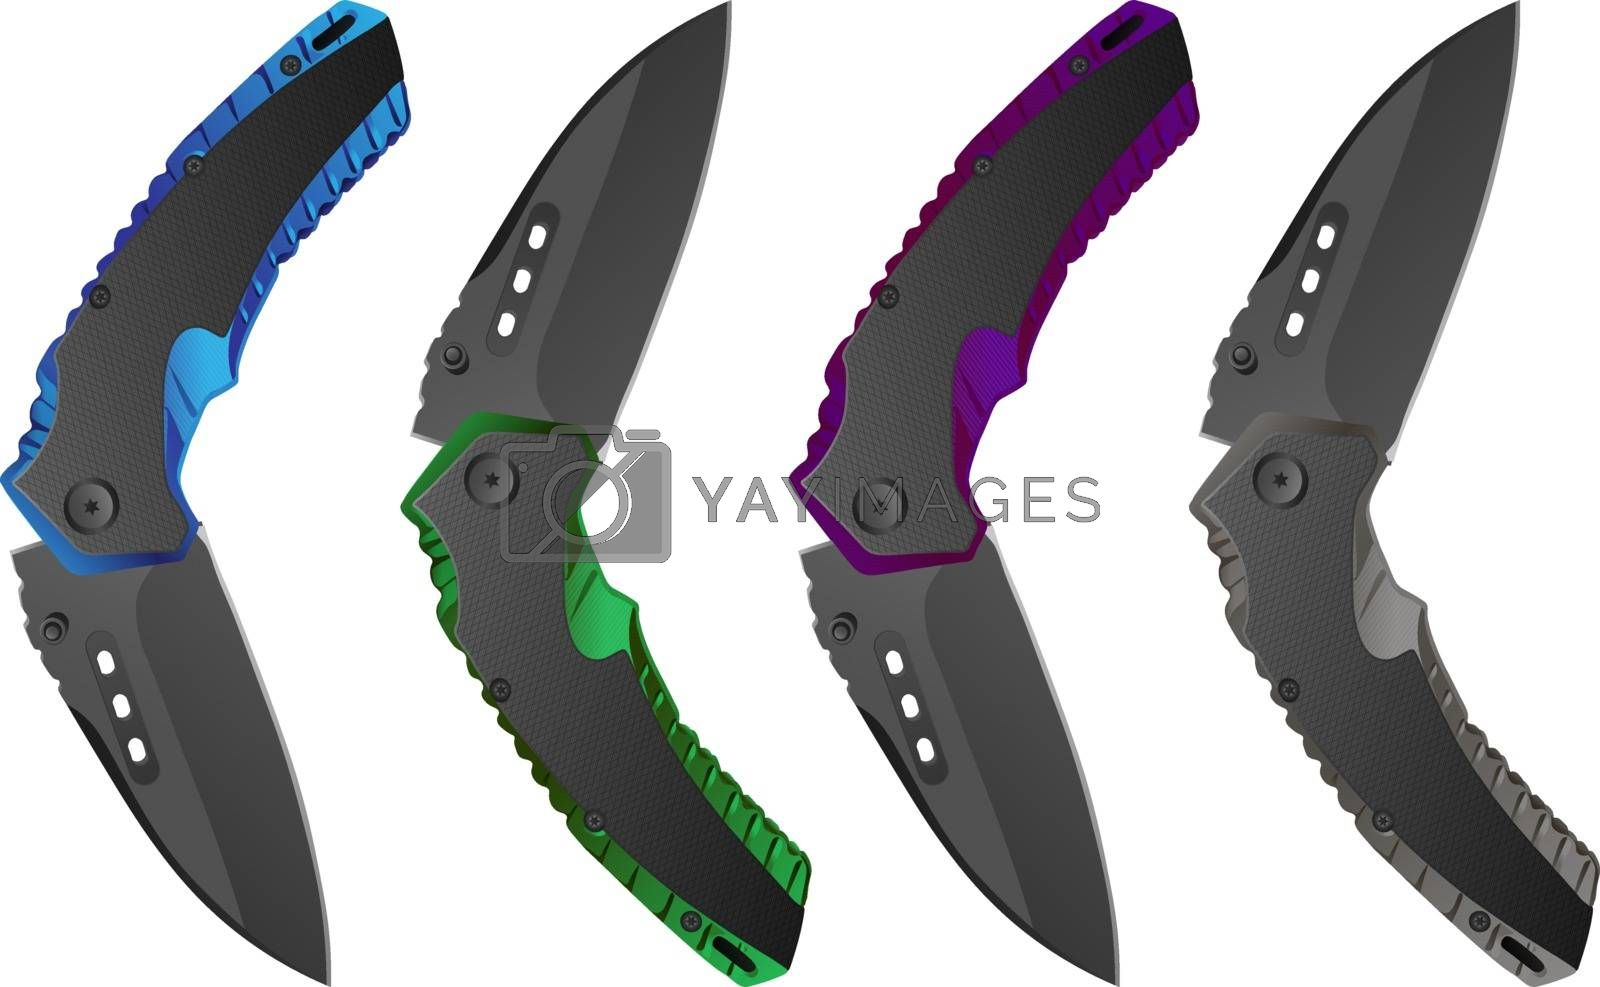 Illustration of four isolated realistic folding knives in blue, green, purple and grey colors